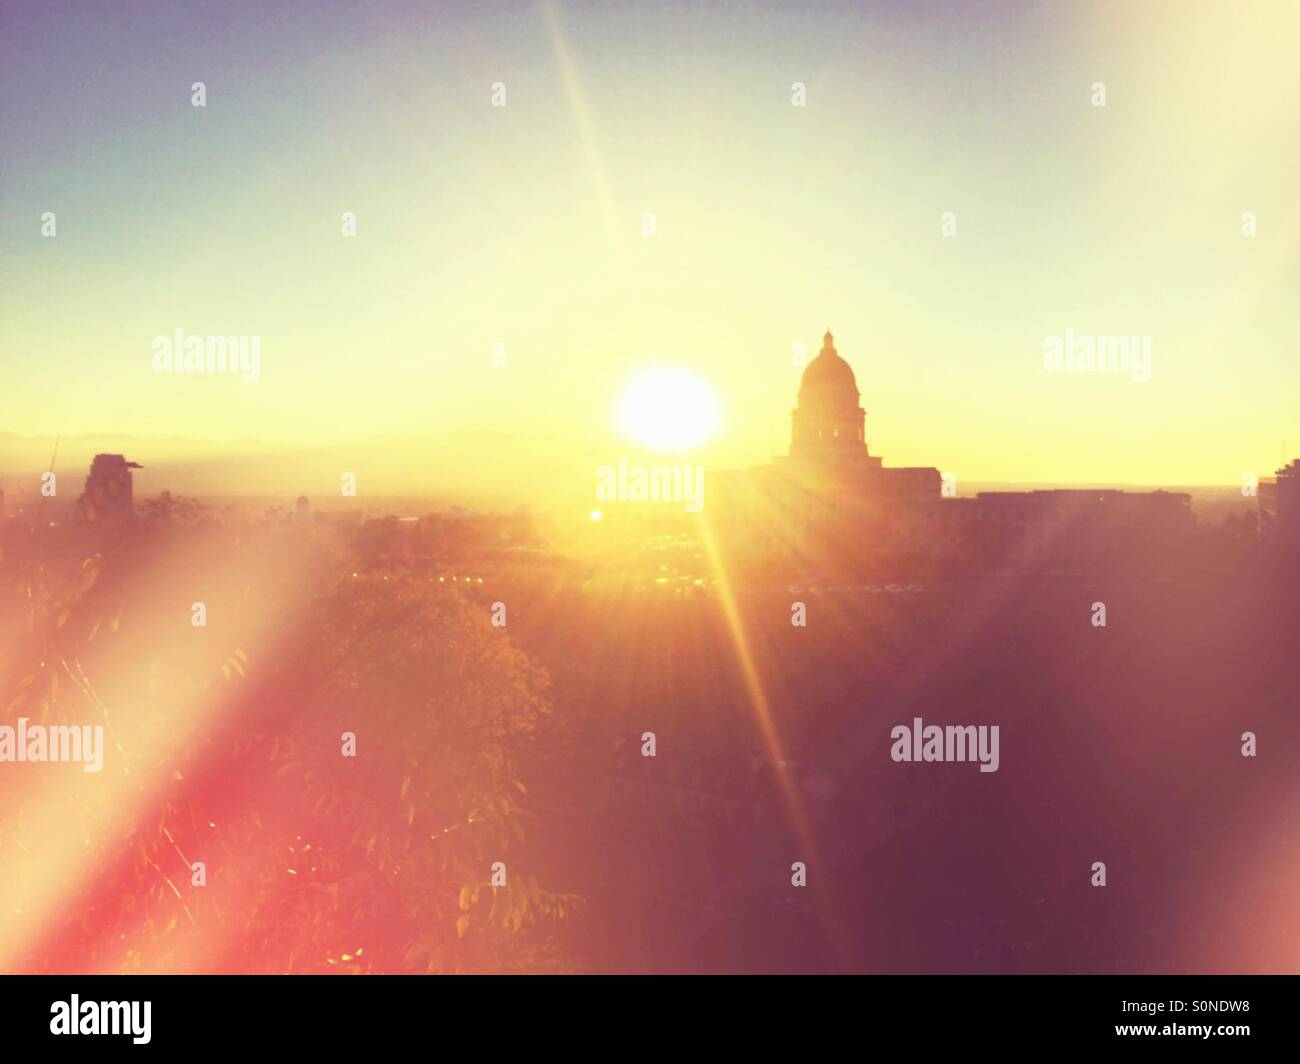 The silhouette of the Utah State Capitol building at sunset. - Stock Image